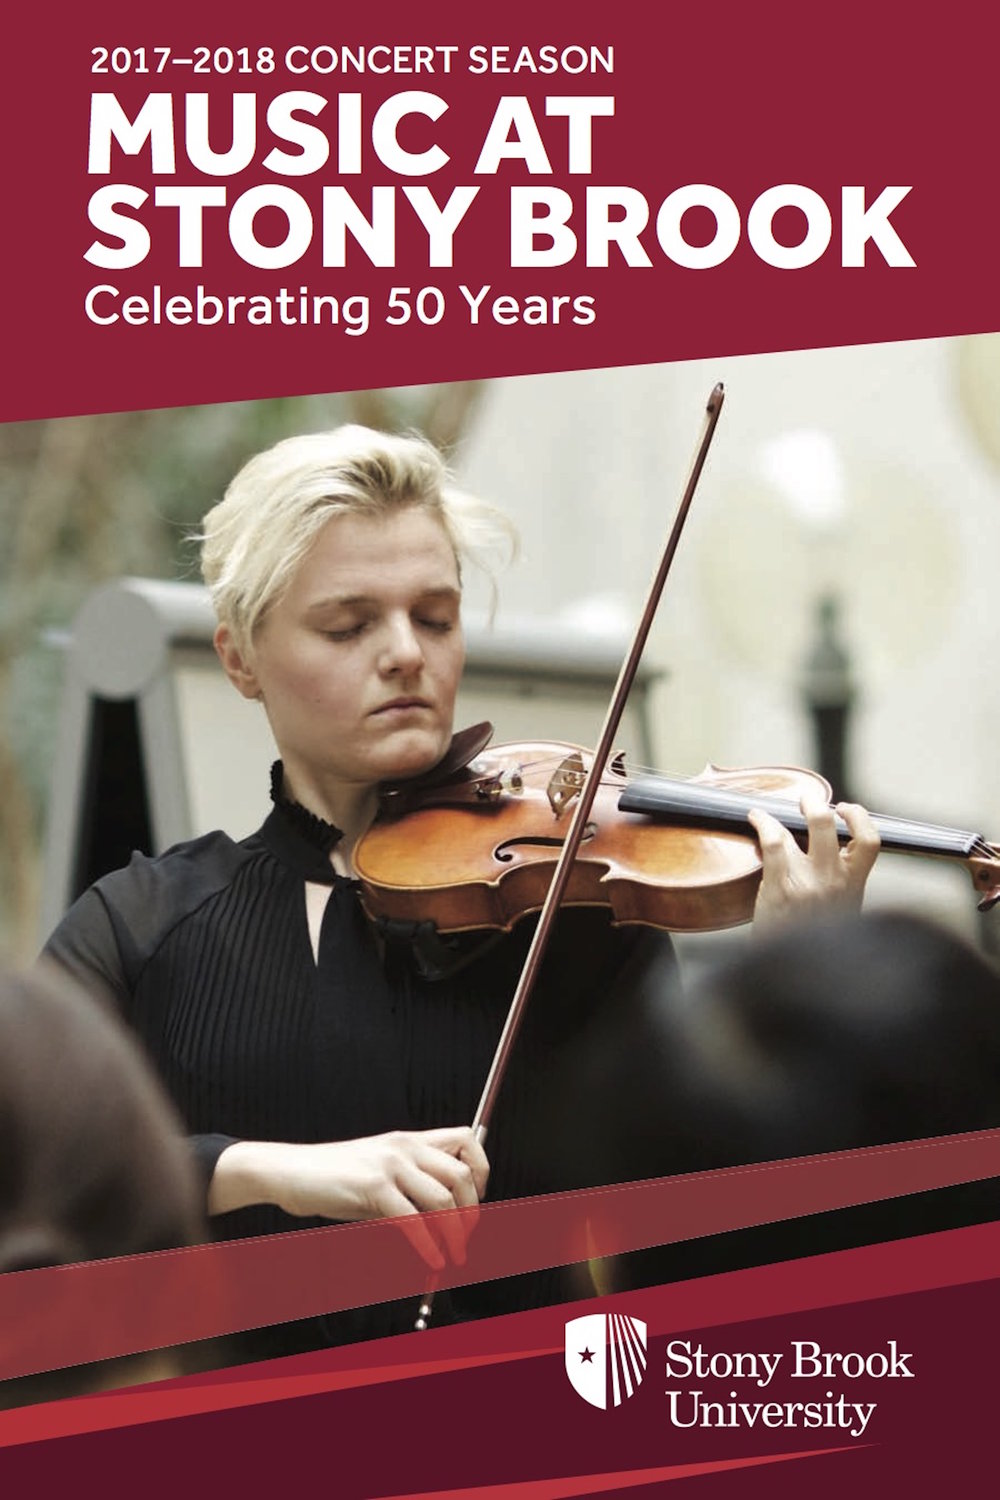 17061931_Music-Concert-Season-17-17_Brochure-8-29.jpg